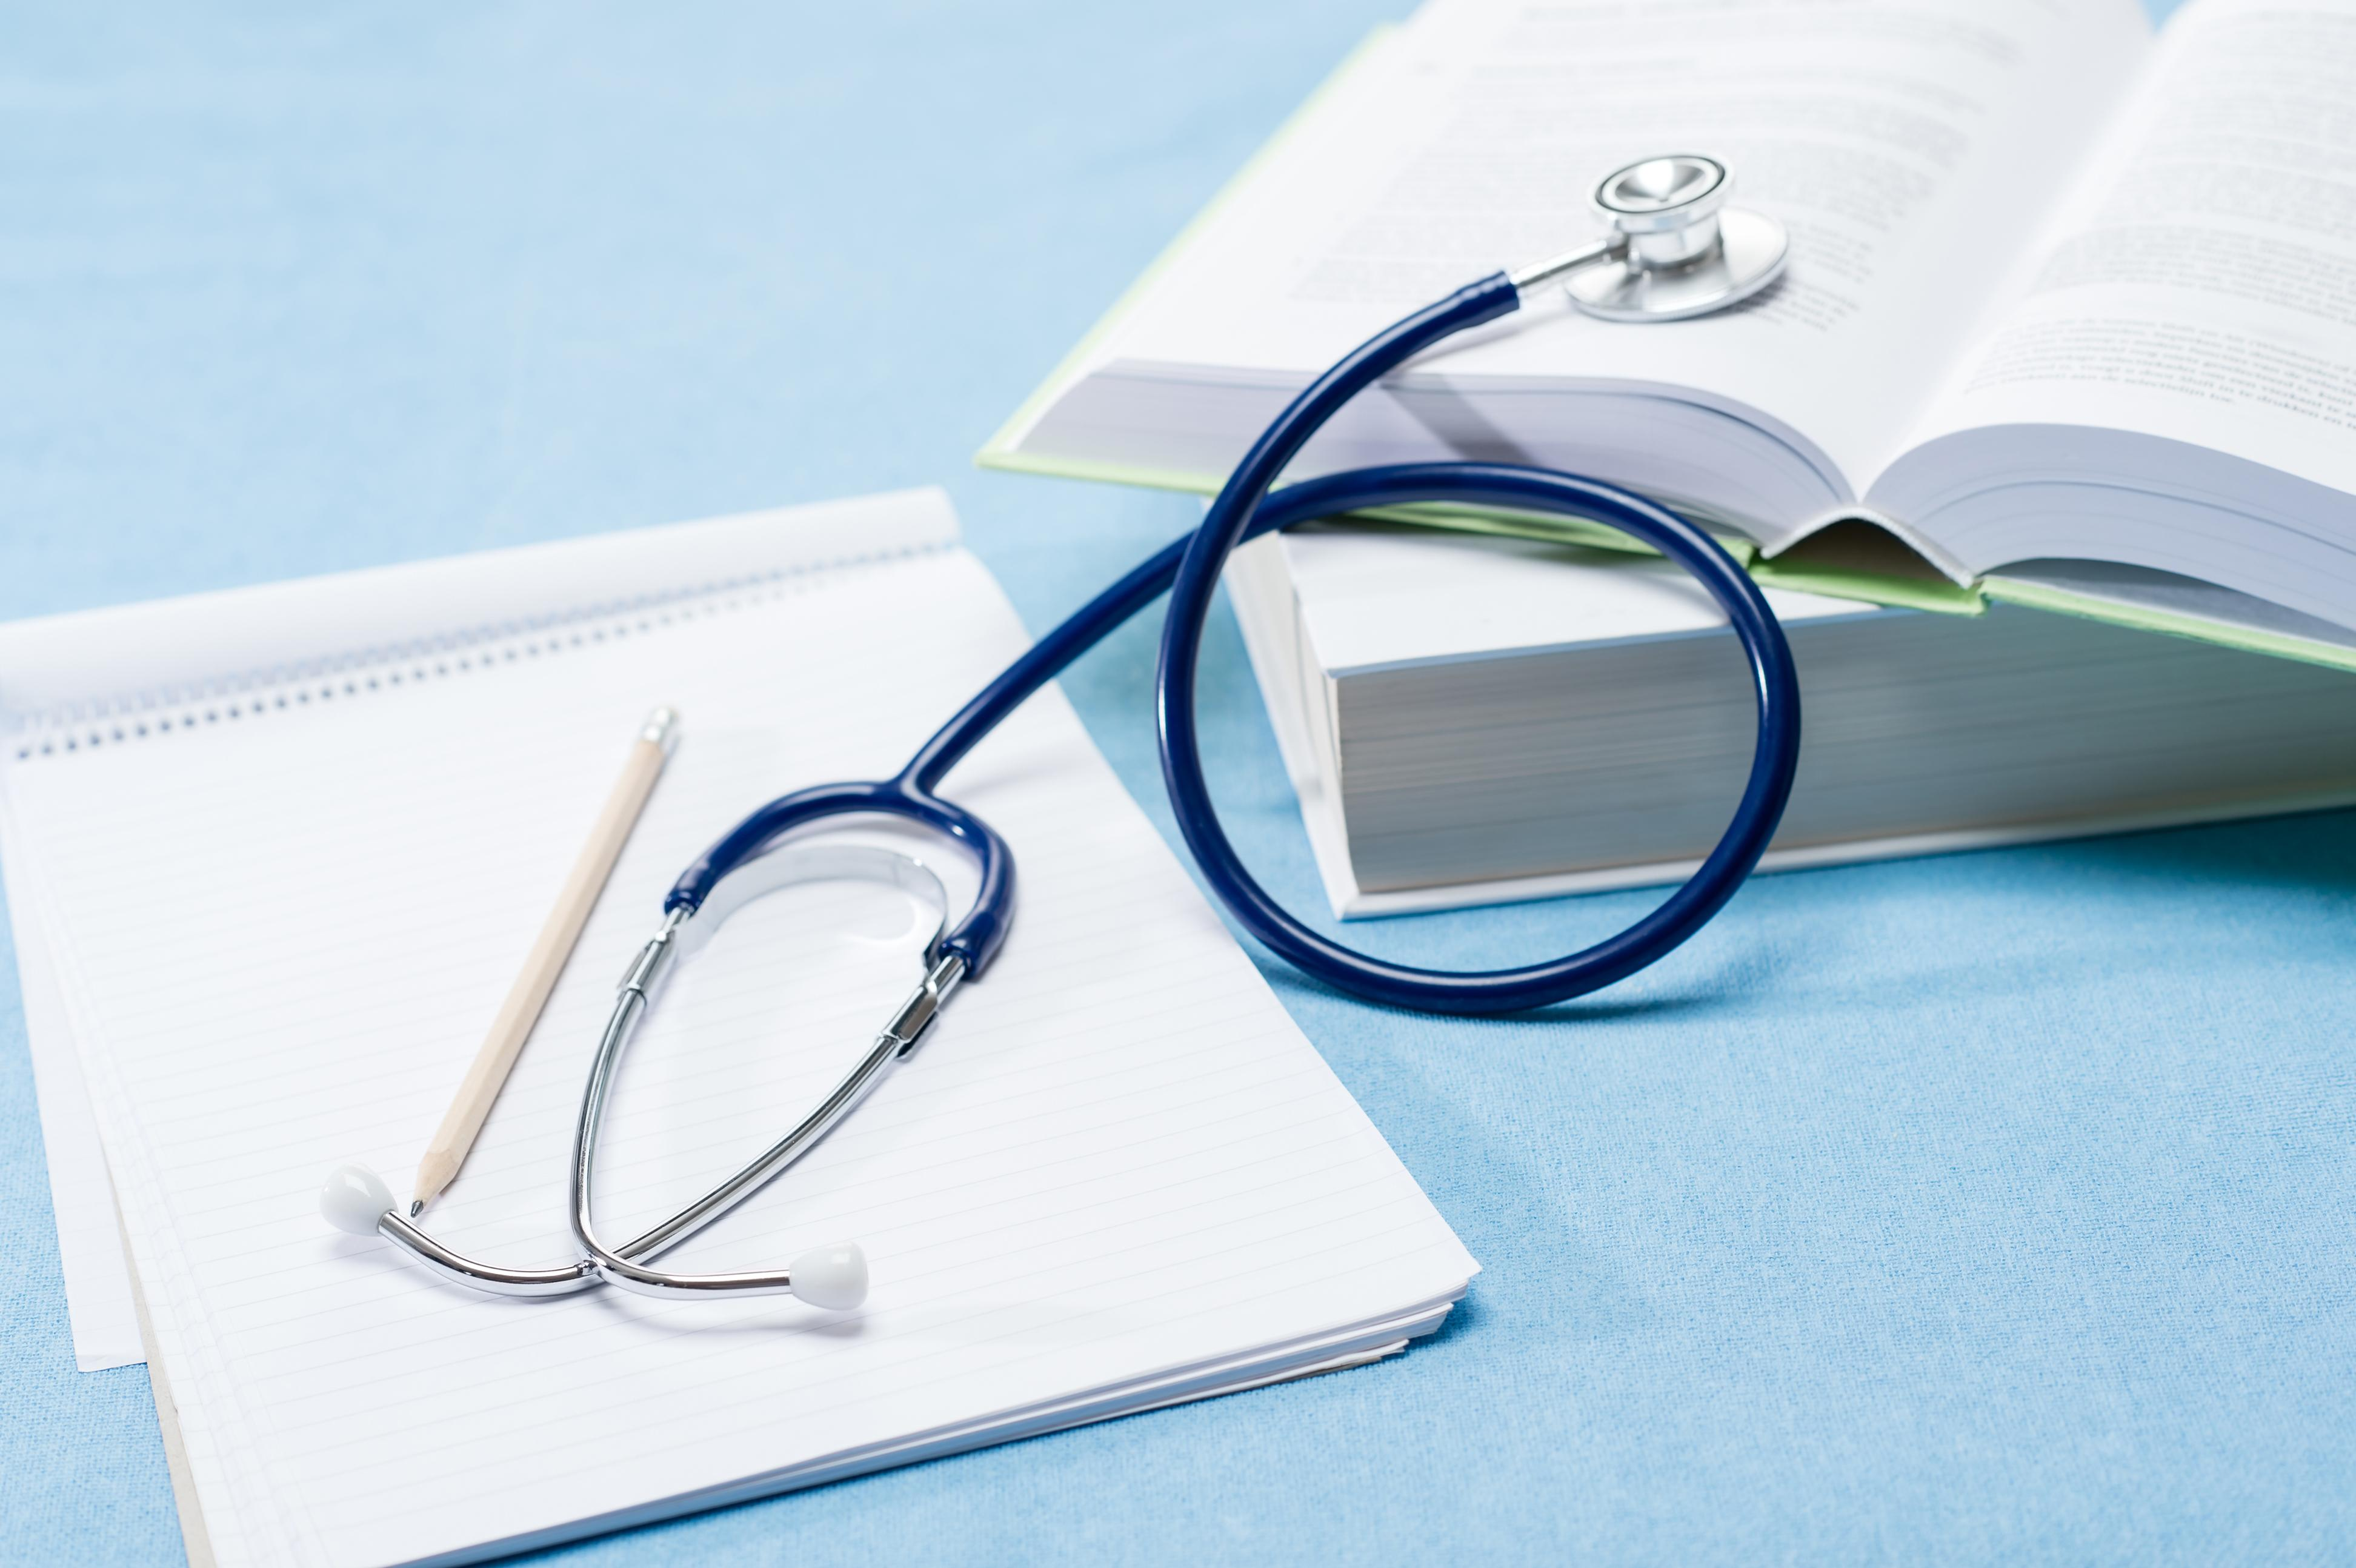 A stethoscope and textbooks